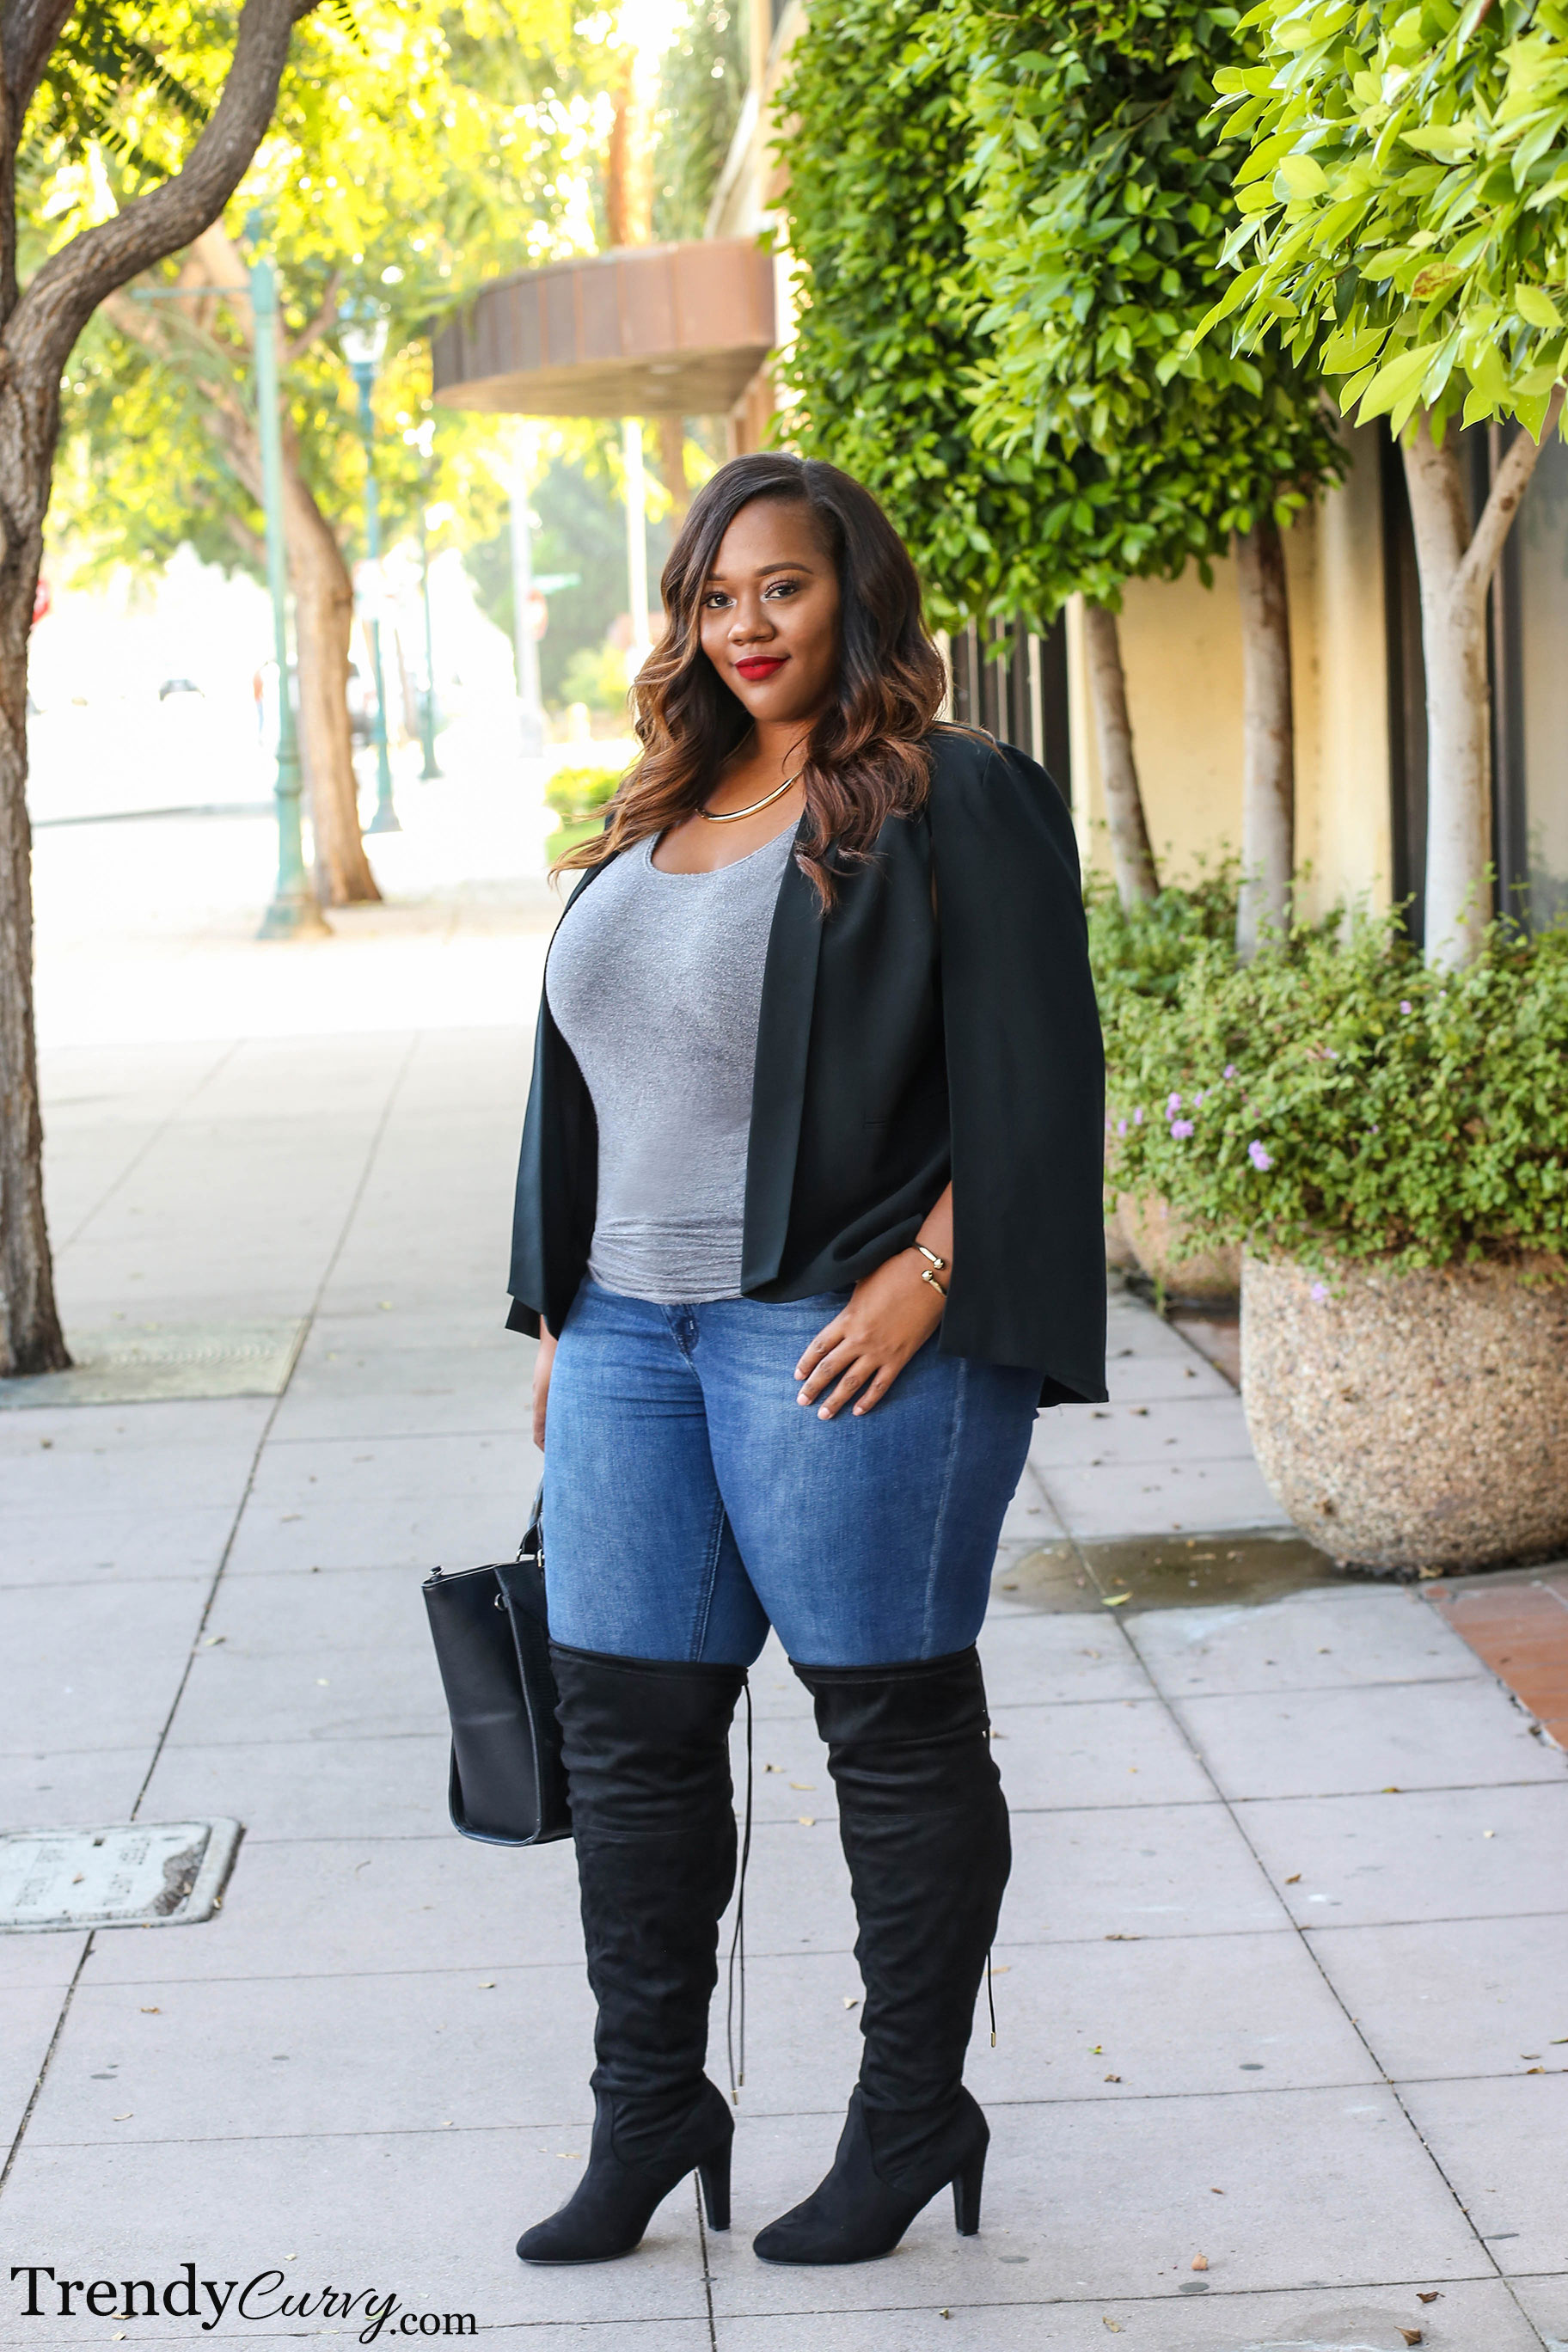 trendy curvy - page 14 of 46 - plus size fashion blogtrendy curvy